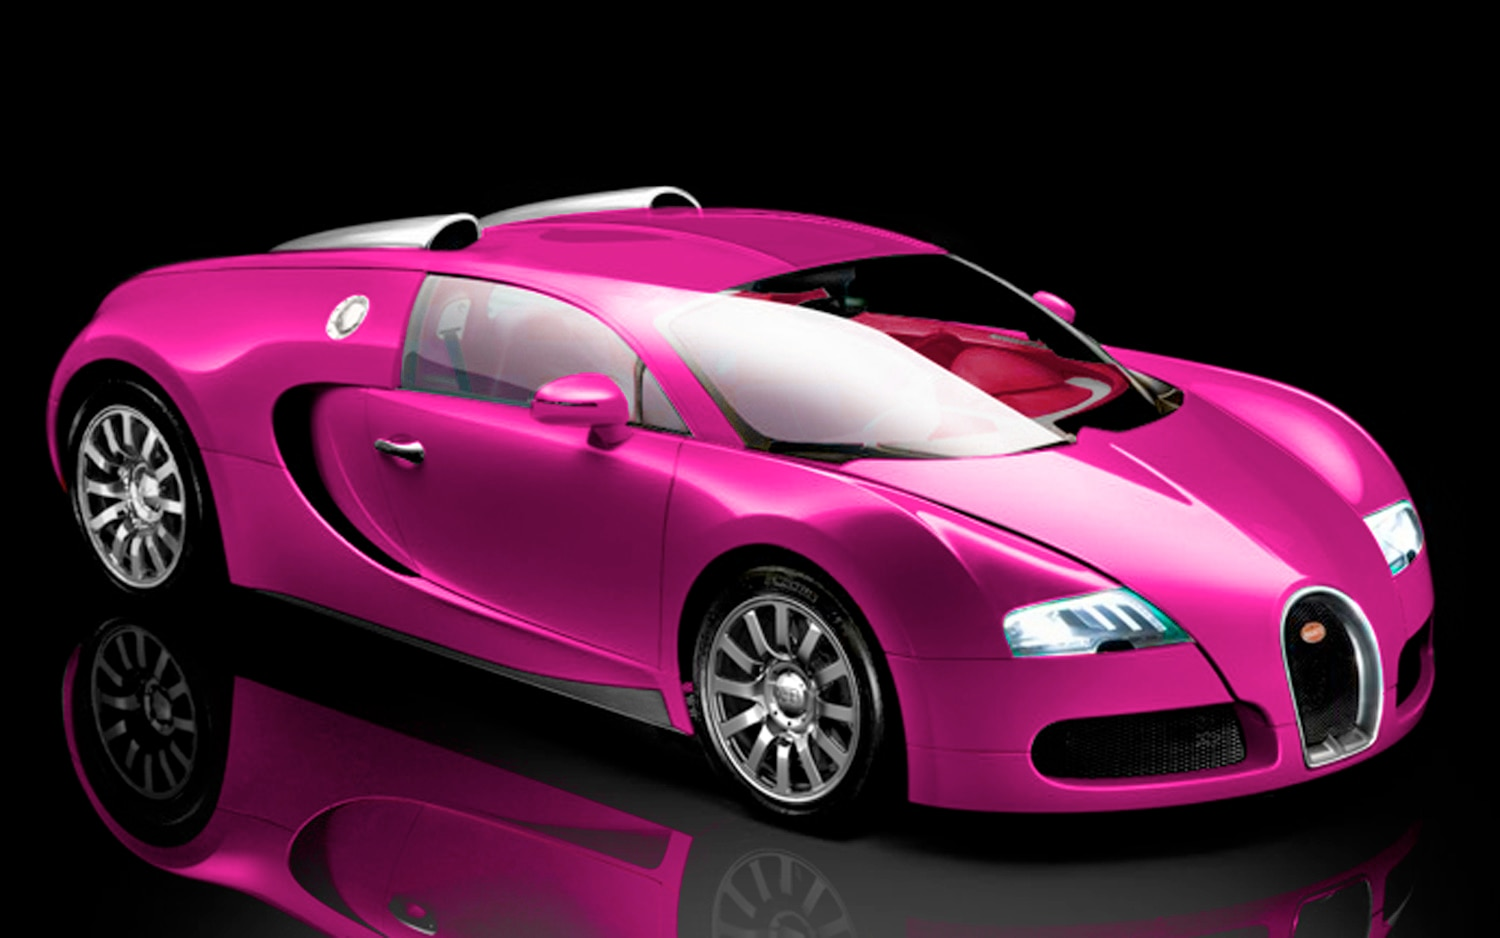 Fashion Hurts? British TV Star Katie Price to Paint Her Bugatti Veyron Pink